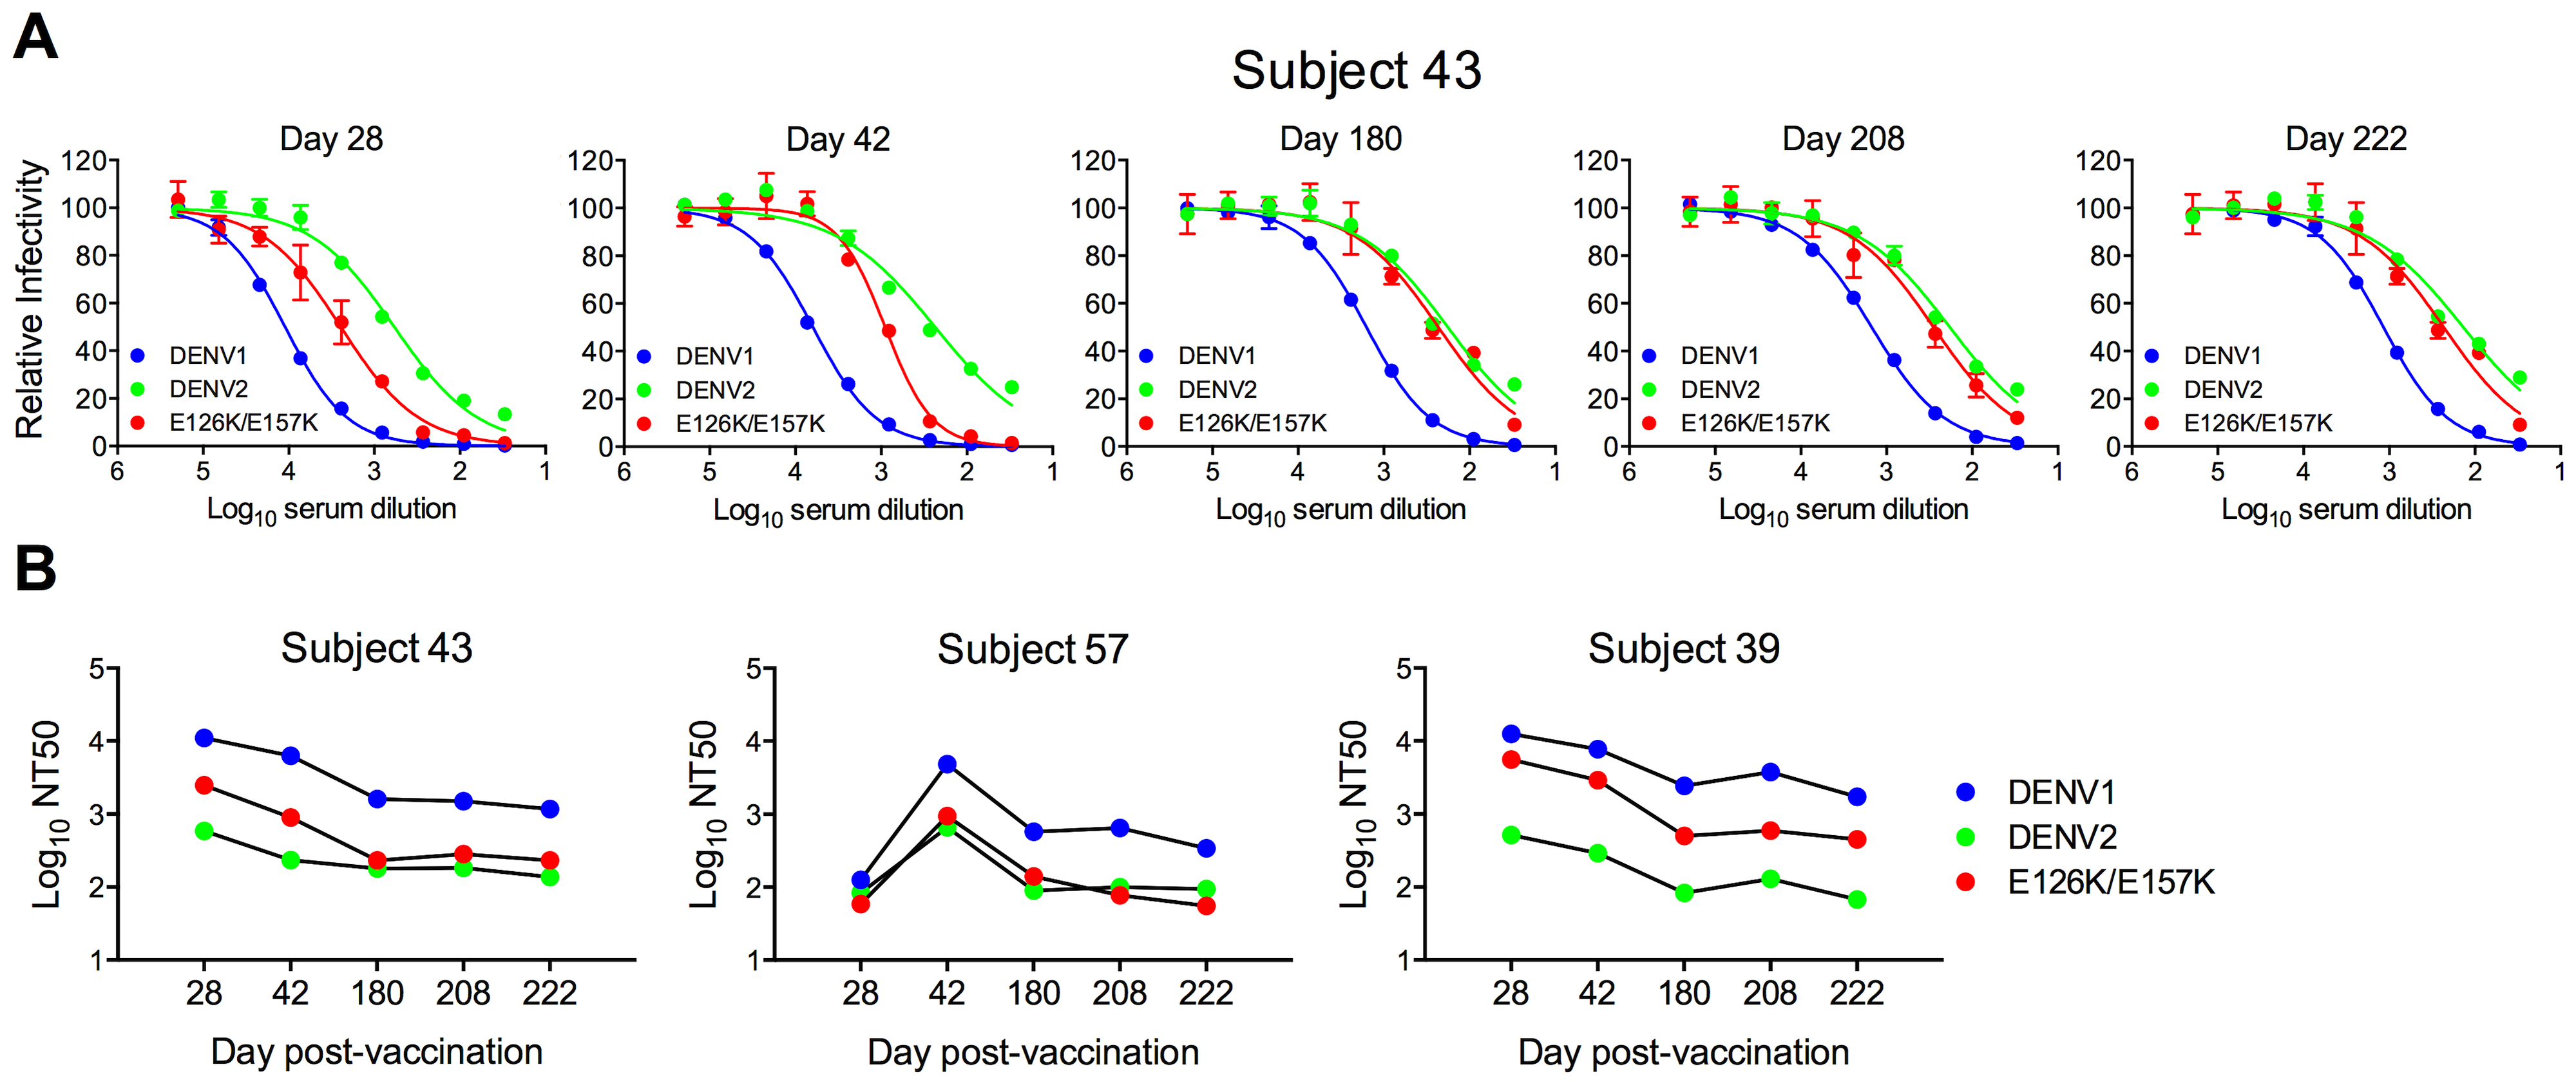 Longitudinal analysis of the effects of DENV1 E126K/E157K mutations on serum neutralizing activity.